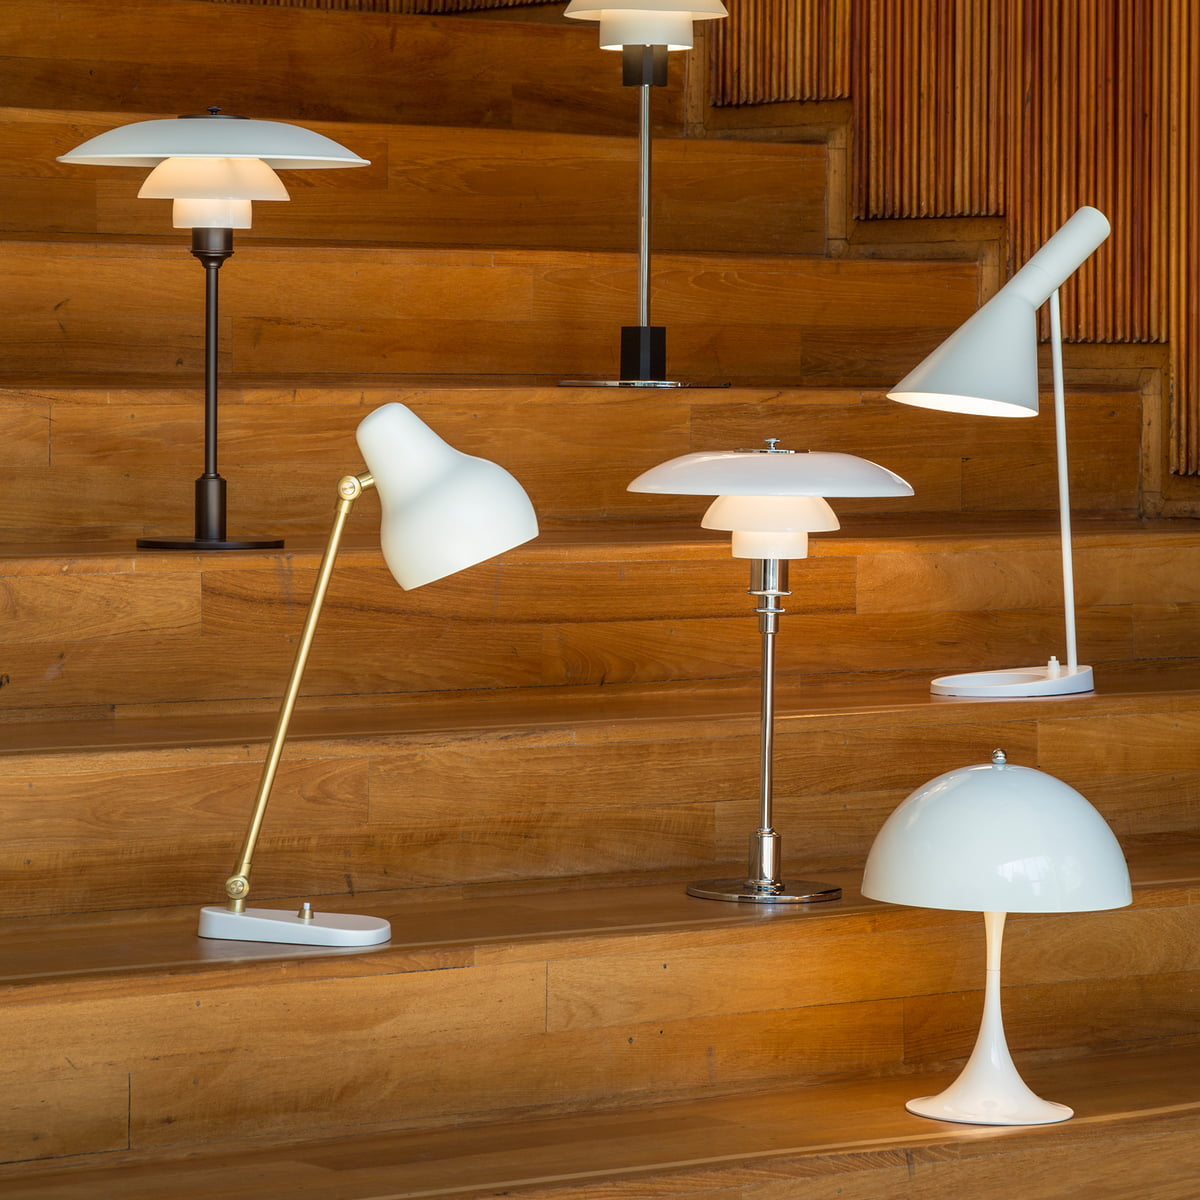 Panthella mini table lamp by louis poulsen white design table lamps by louis poulsen aloadofball Choice Image